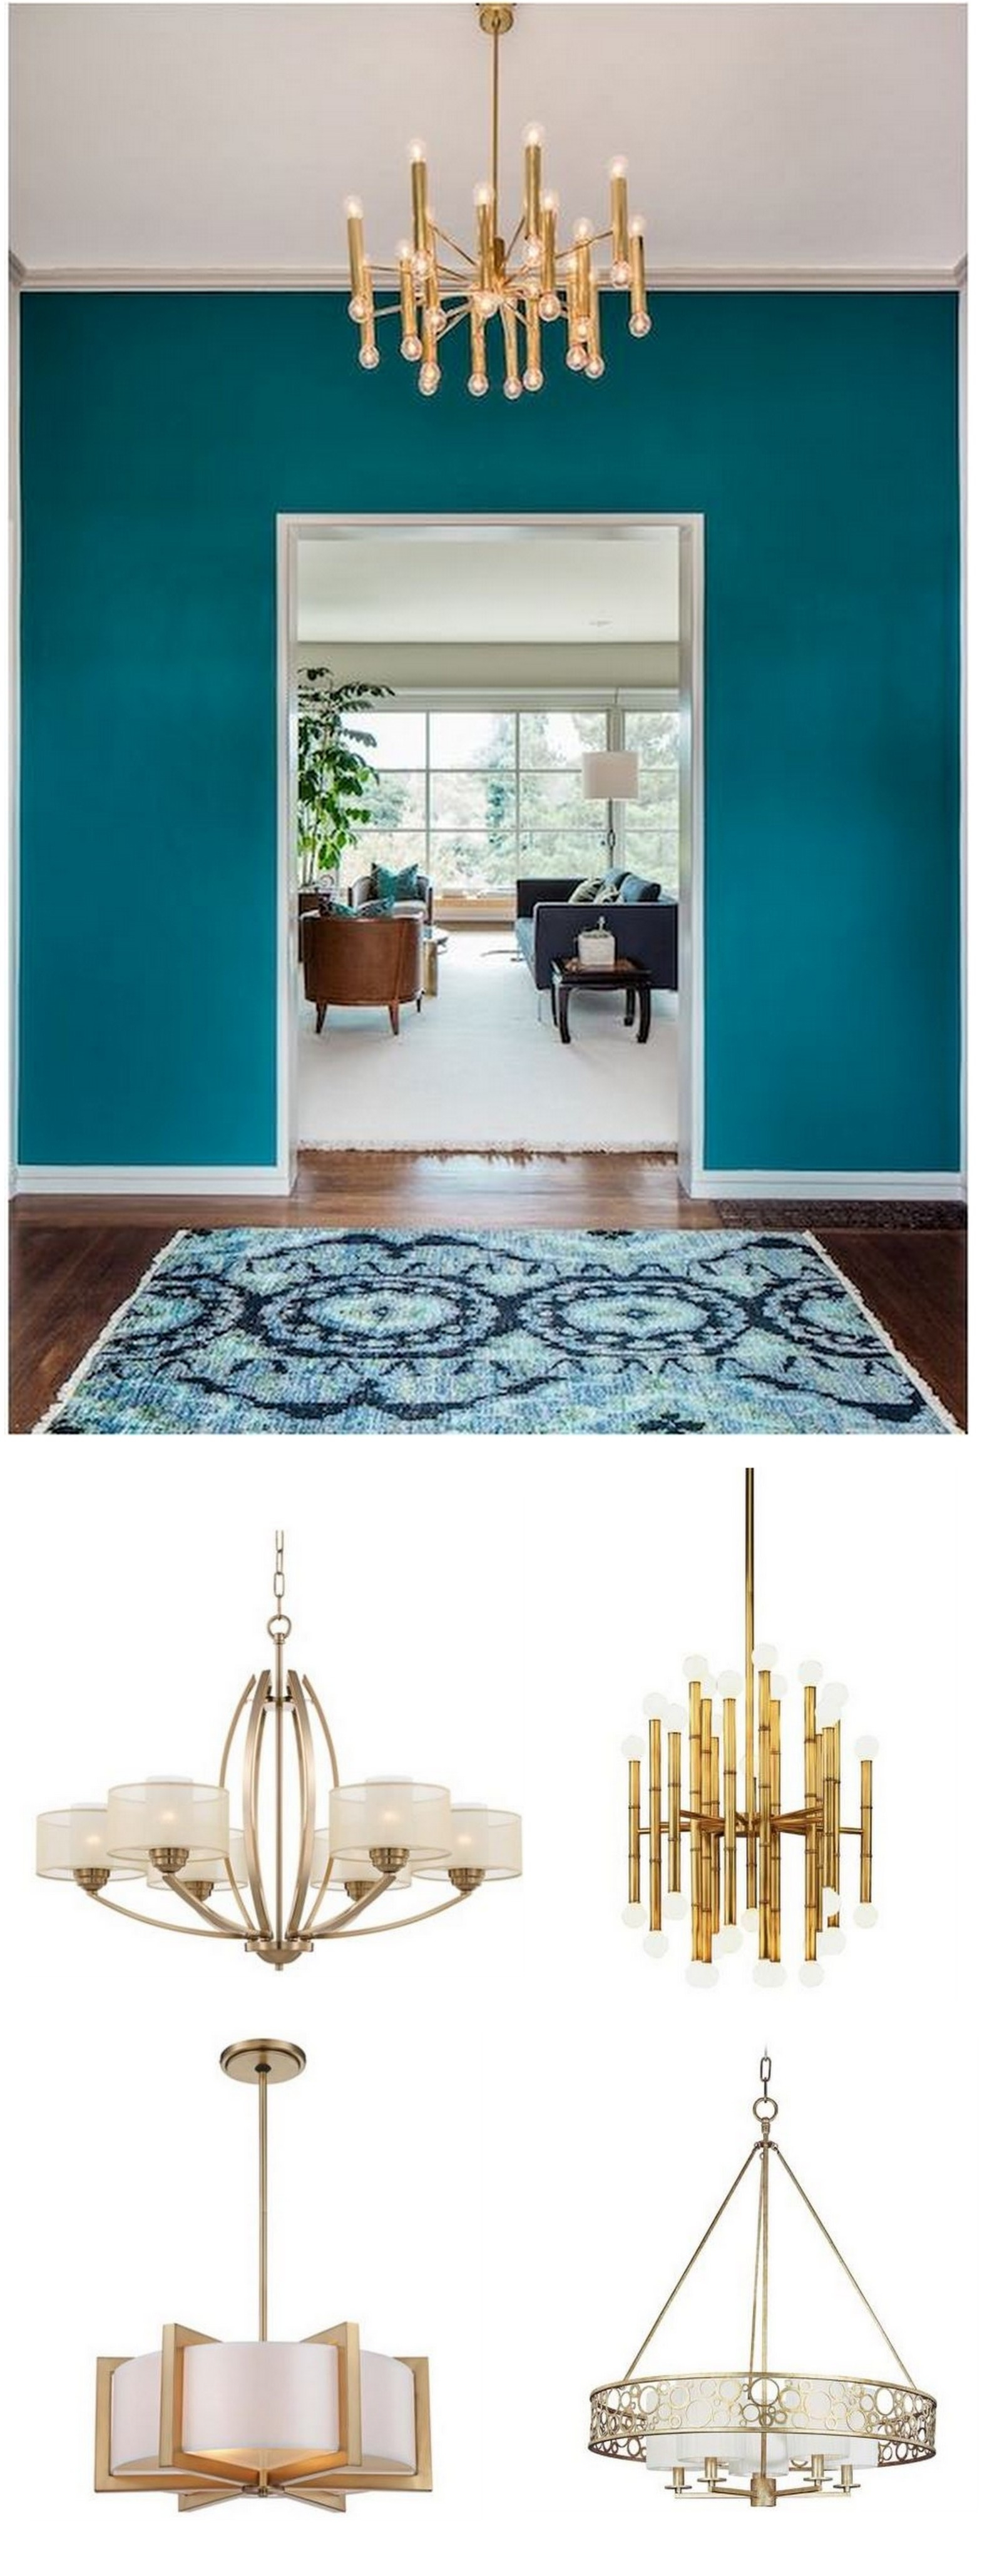 Golden And Glamorous Lighting Home Decorating Blog Community Throughout Turquoise And Gold Chandeliers (View 11 of 13)